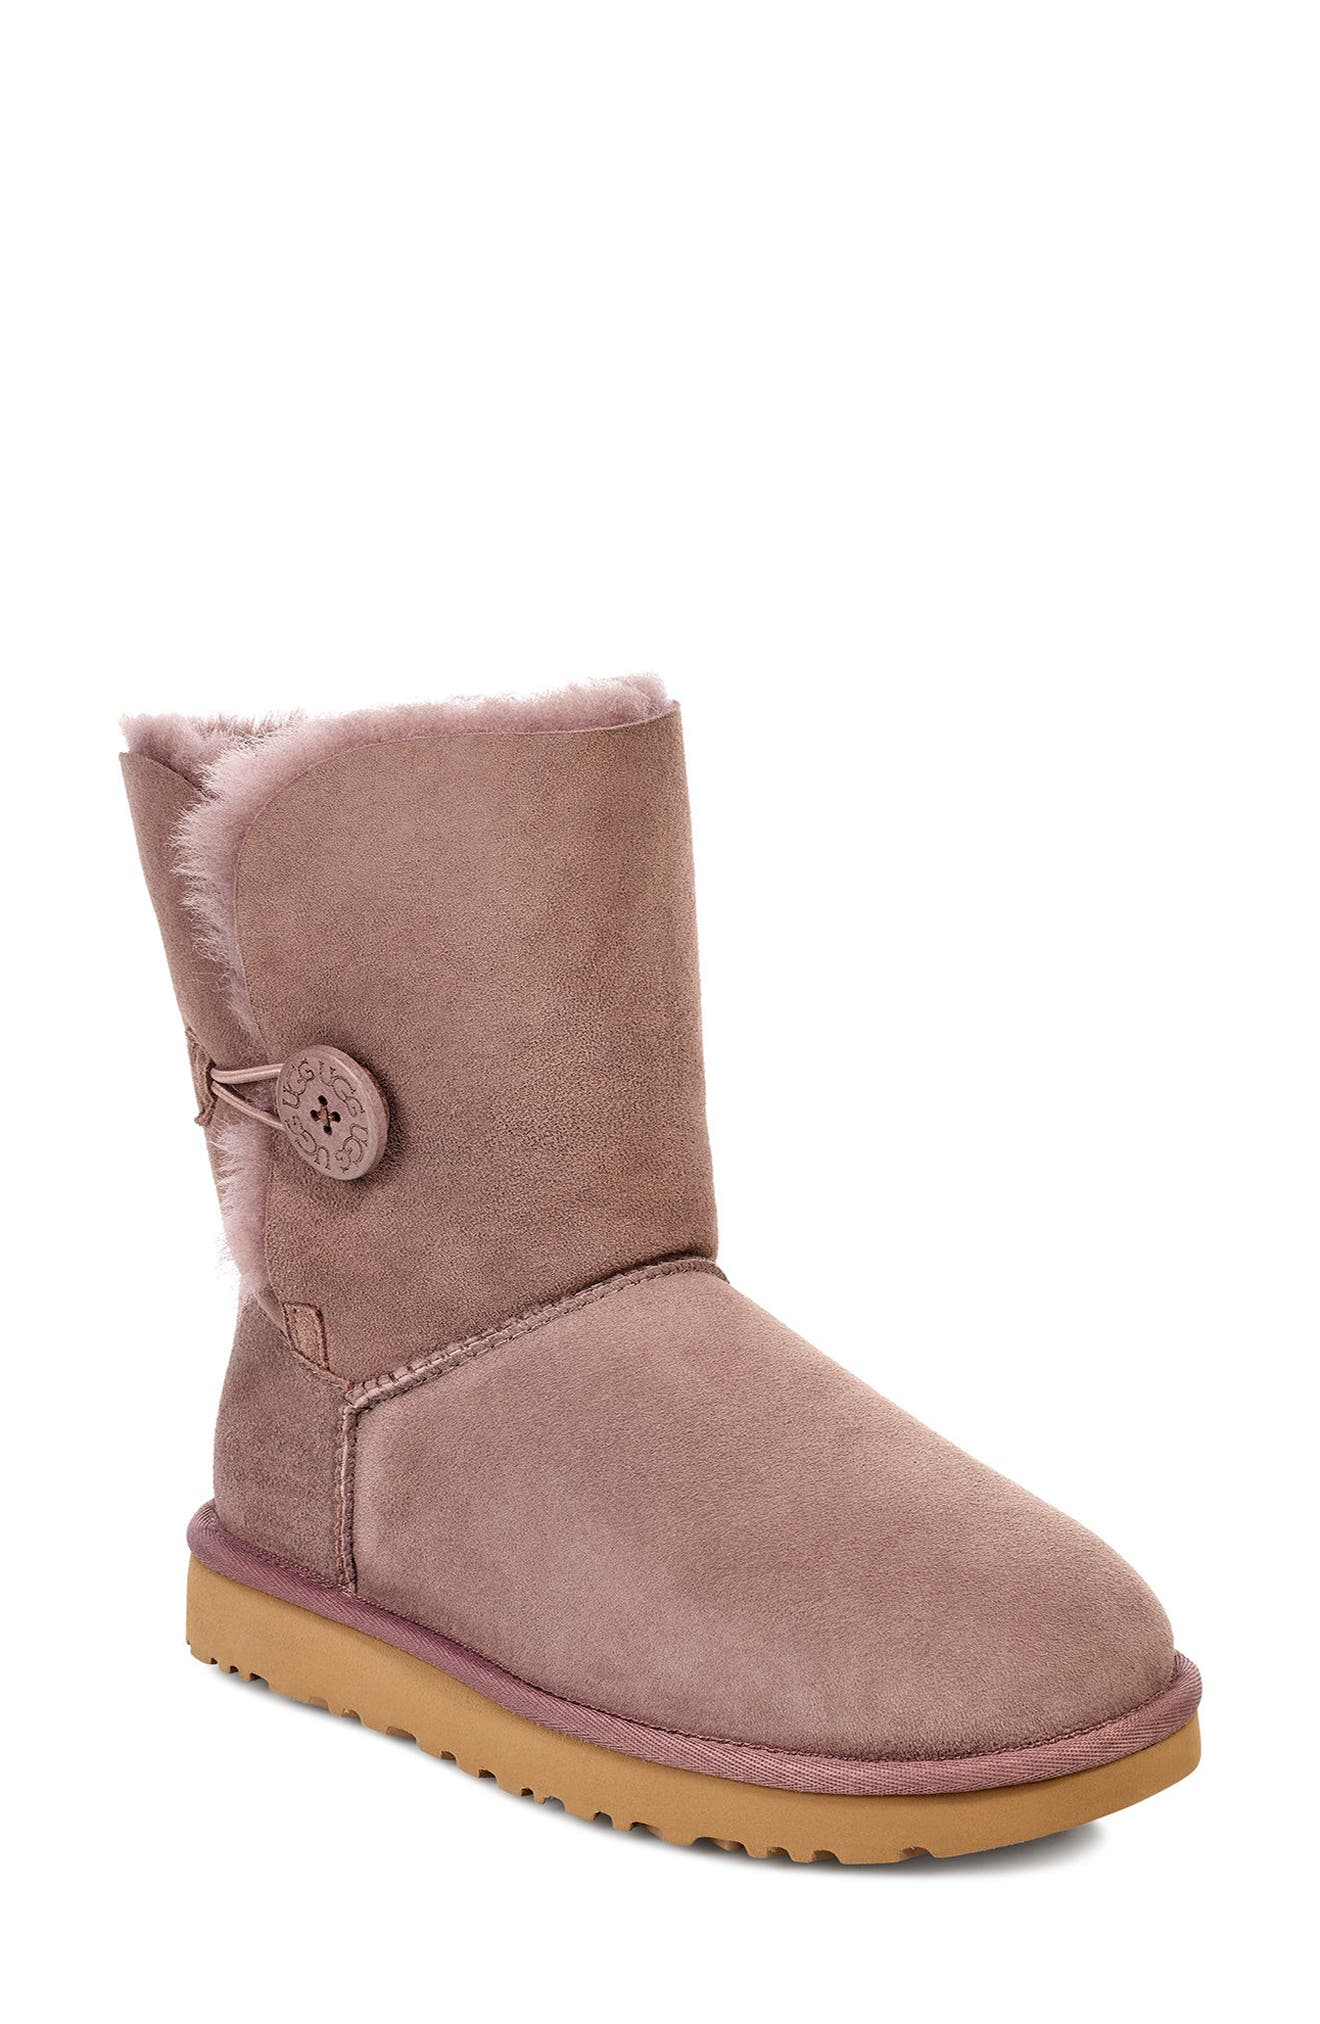 'Bailey Button II' Boot,                             Main thumbnail 1, color,                             STORMY GREY SUEDE